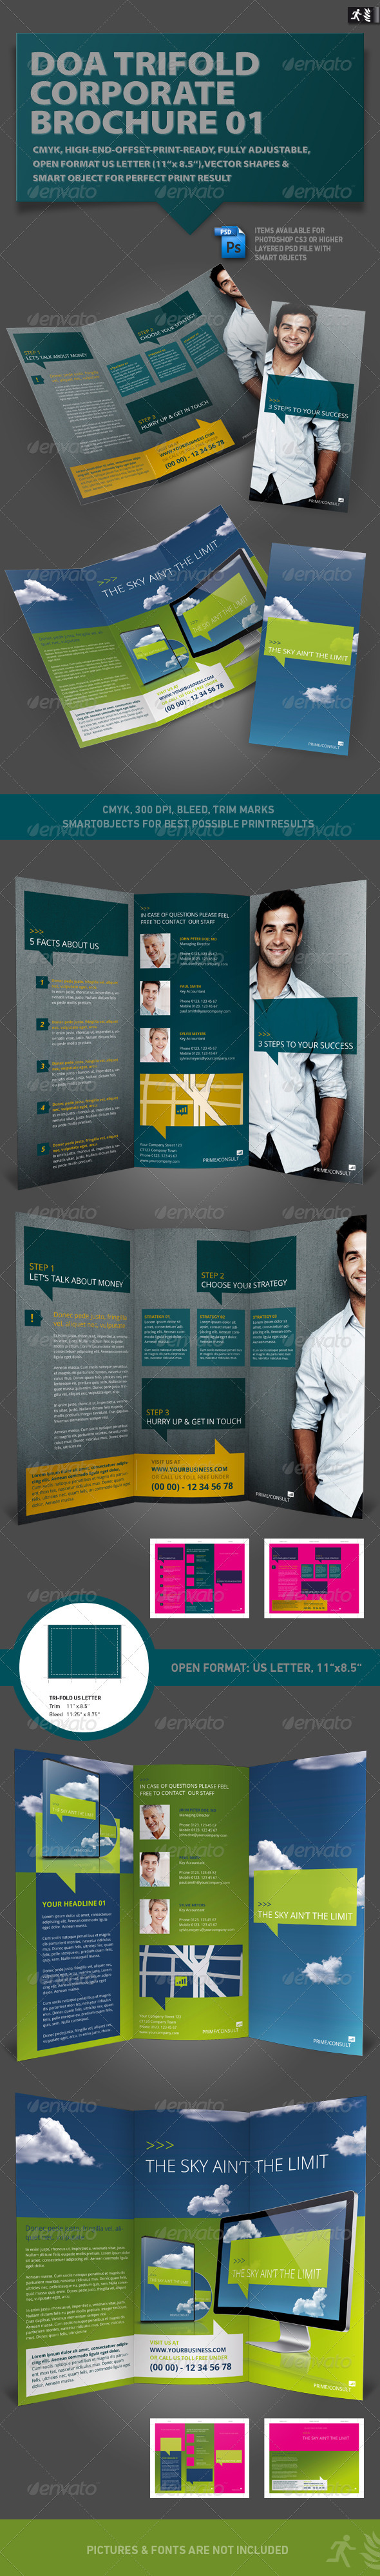 GraphicRiver DOA Trifold Corporate Brochure 01 1747257